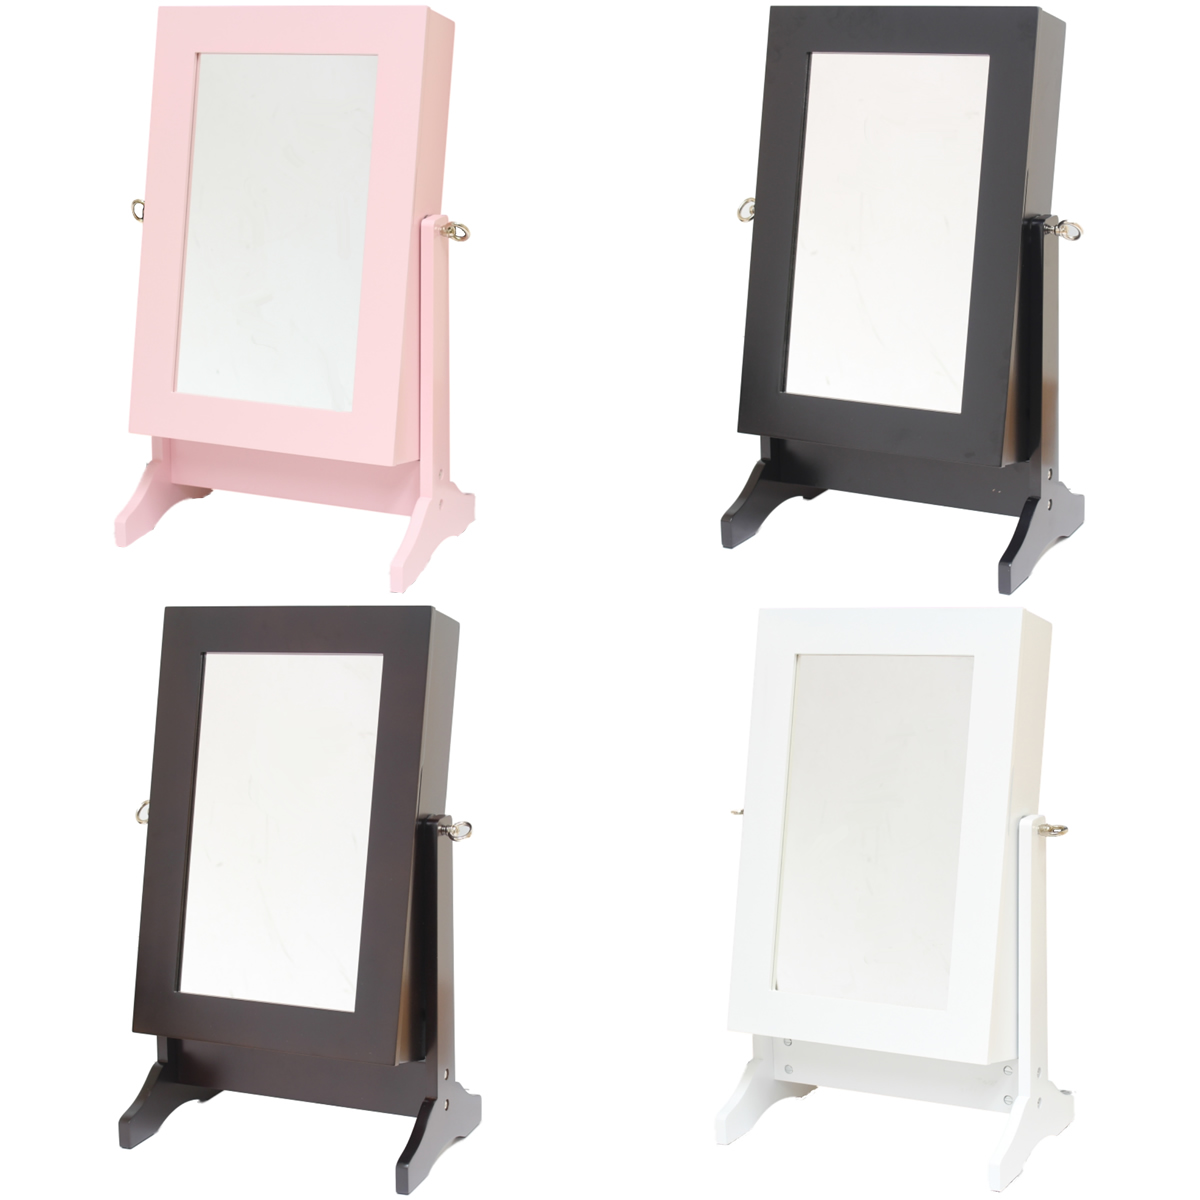 jewellery box organiser stand dressing table mirror for earring ring necklace ebay. Black Bedroom Furniture Sets. Home Design Ideas